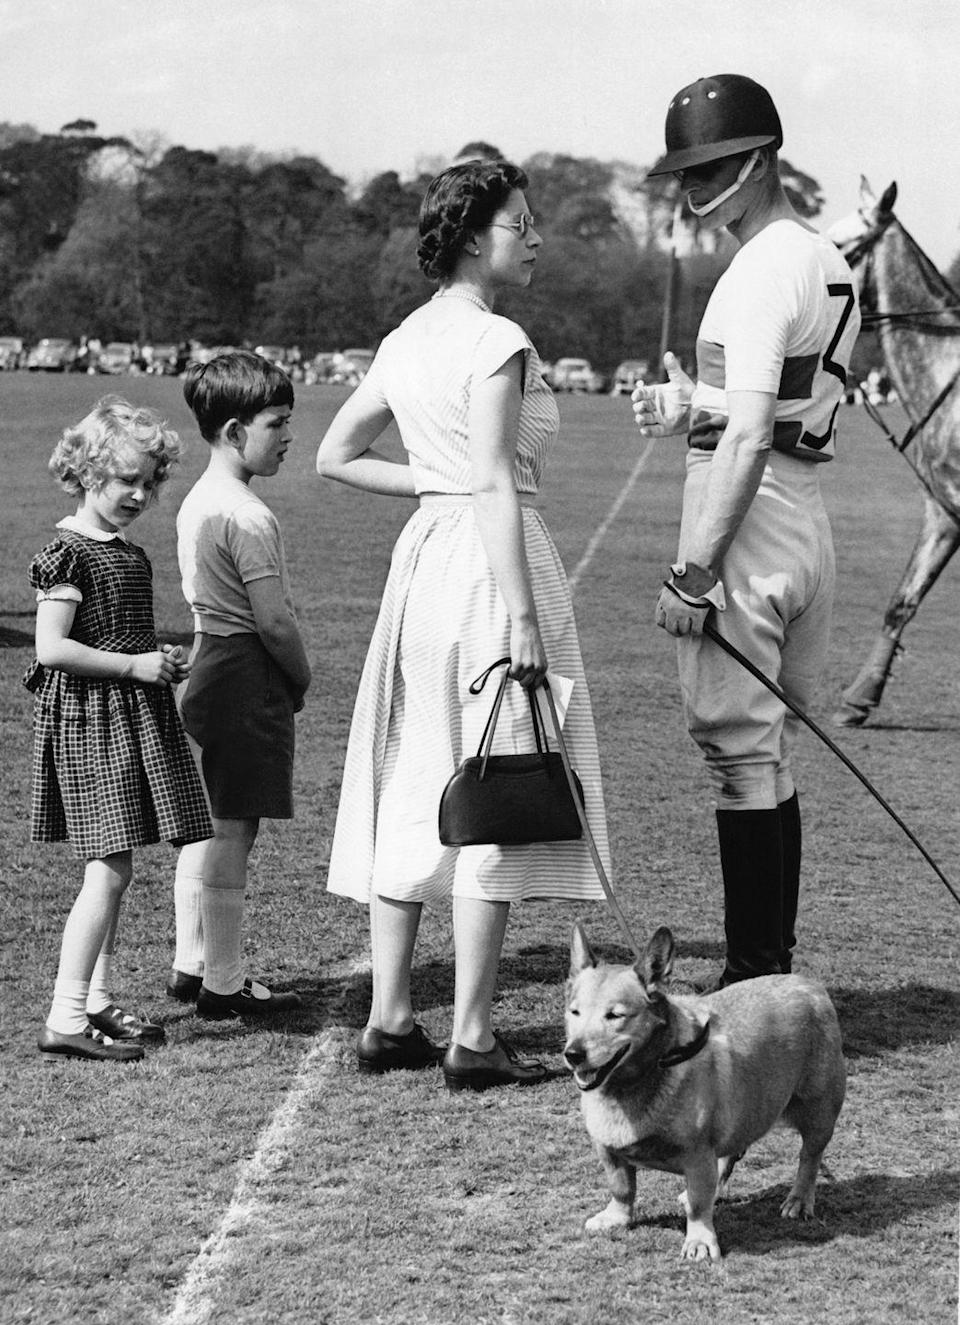 """<p>Though the queen, here with Philip and their children in May 1956, didn't share her husband's enthusiasm for polo (nor did he share her passion for corgis), they both loved the outdoors. And, as Prince Philip <a href=""""http://www.mirror.co.uk/news/uk-news/prince-philip-quotes-the-queen-and-her-husband-1446365"""" rel=""""nofollow noopener"""" target=""""_blank"""" data-ylk=""""slk:said in 2006"""" class=""""link rapid-noclick-resp"""">said in 2006</a>, """"It's the secret of a happy marriage to have different interests.""""</p>"""